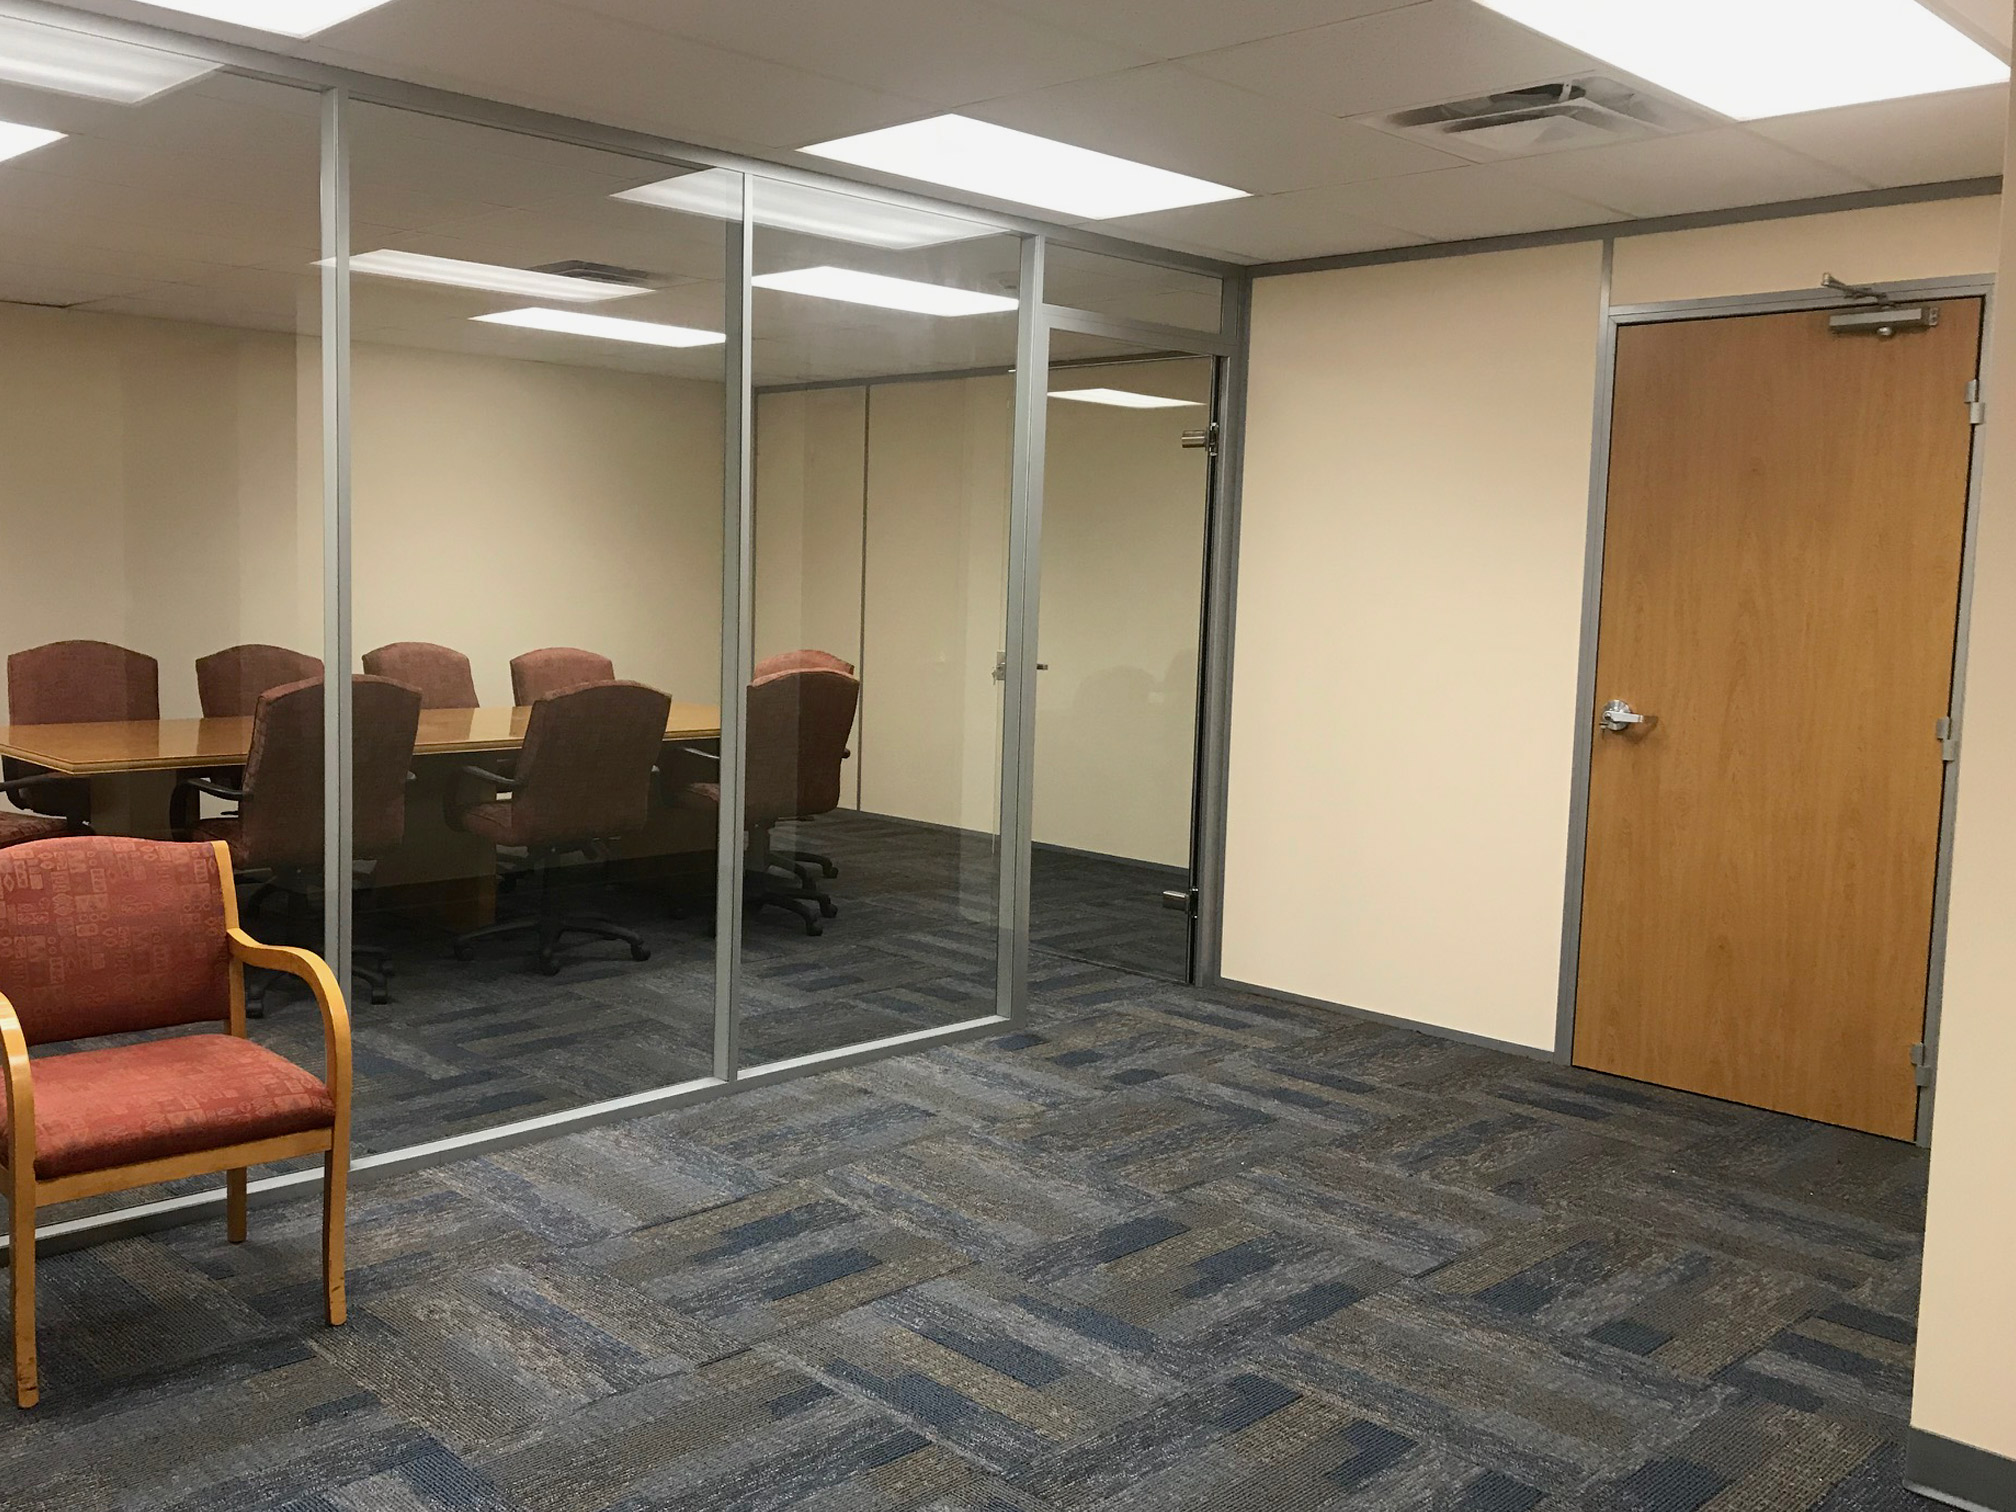 Glass conference room with swing doors - financial institution installation